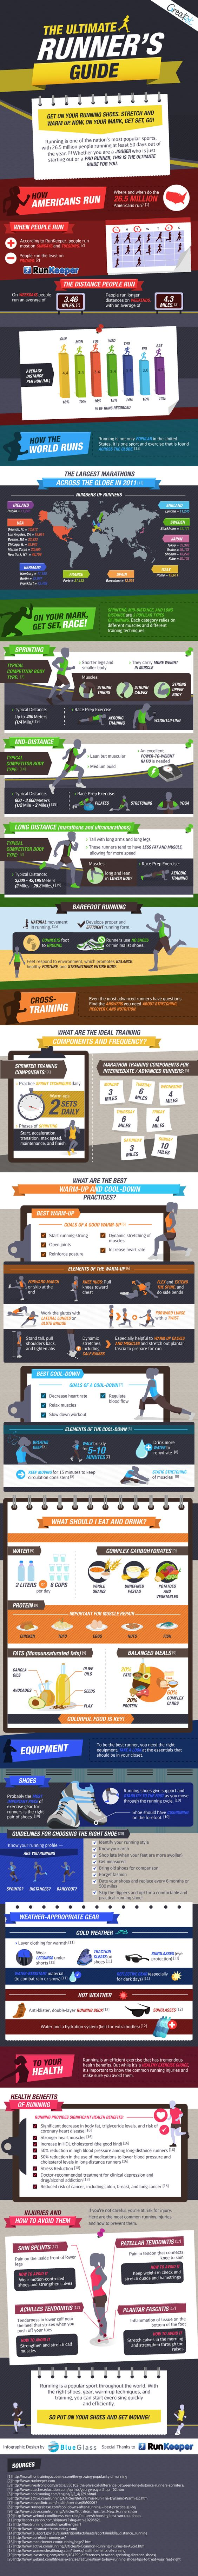 runners guide for beginners